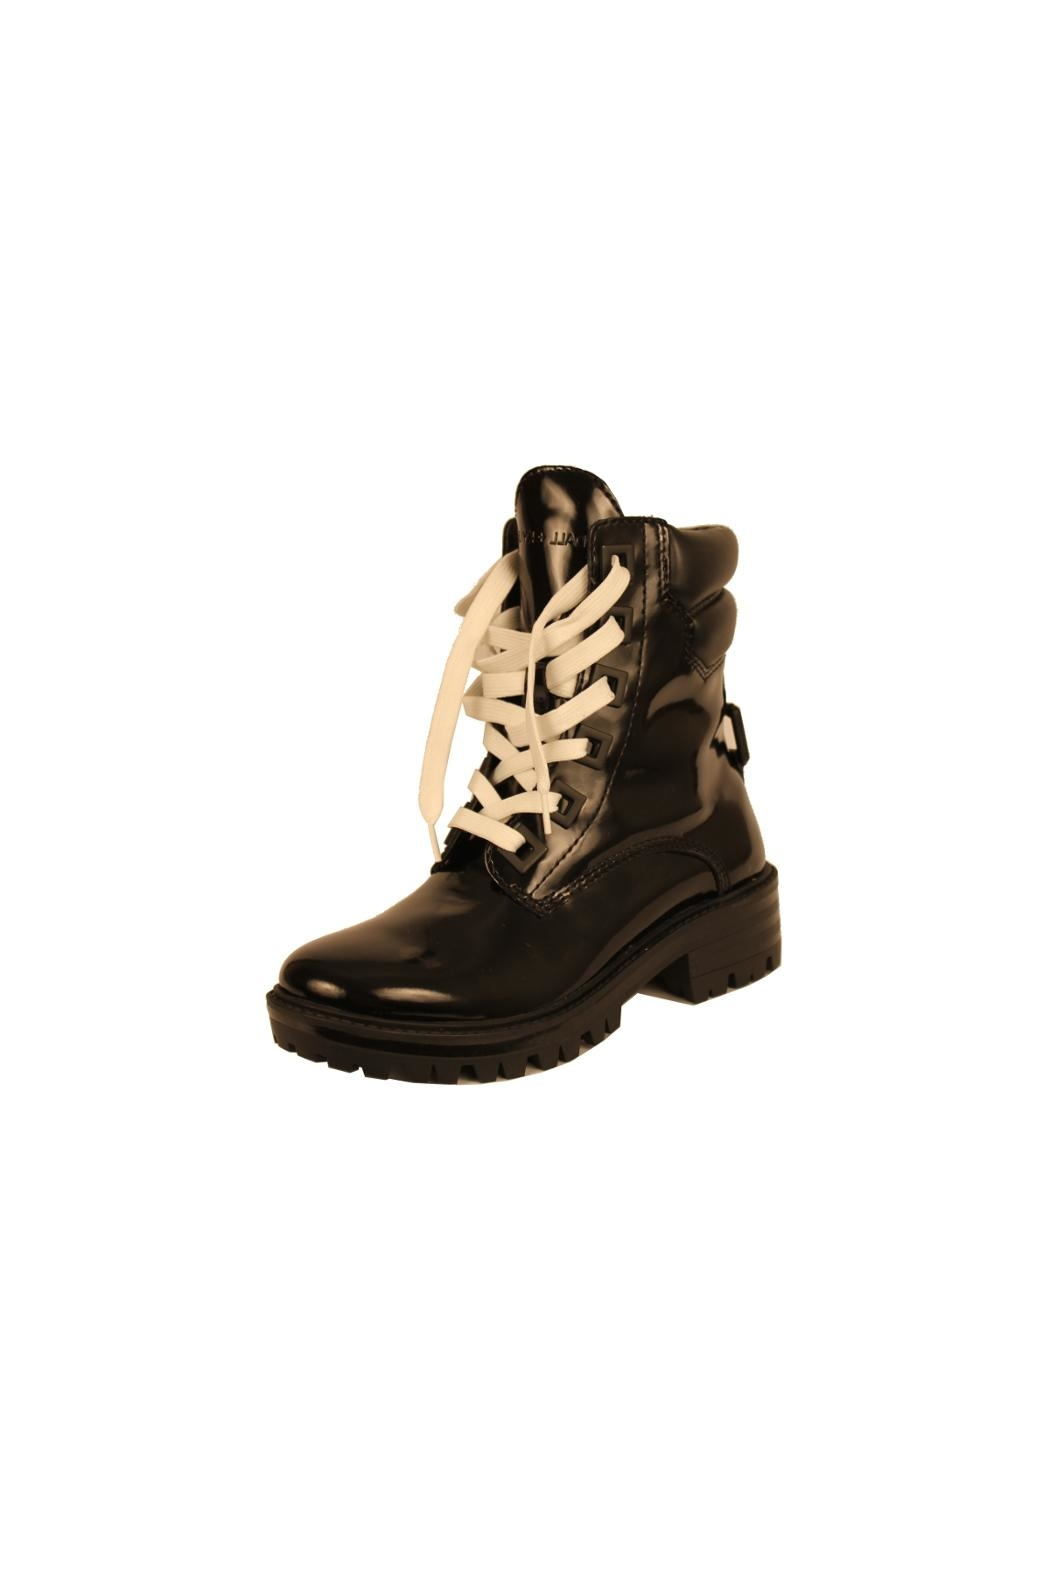 Kendall + Kylie Black Patent Boot - Main Image